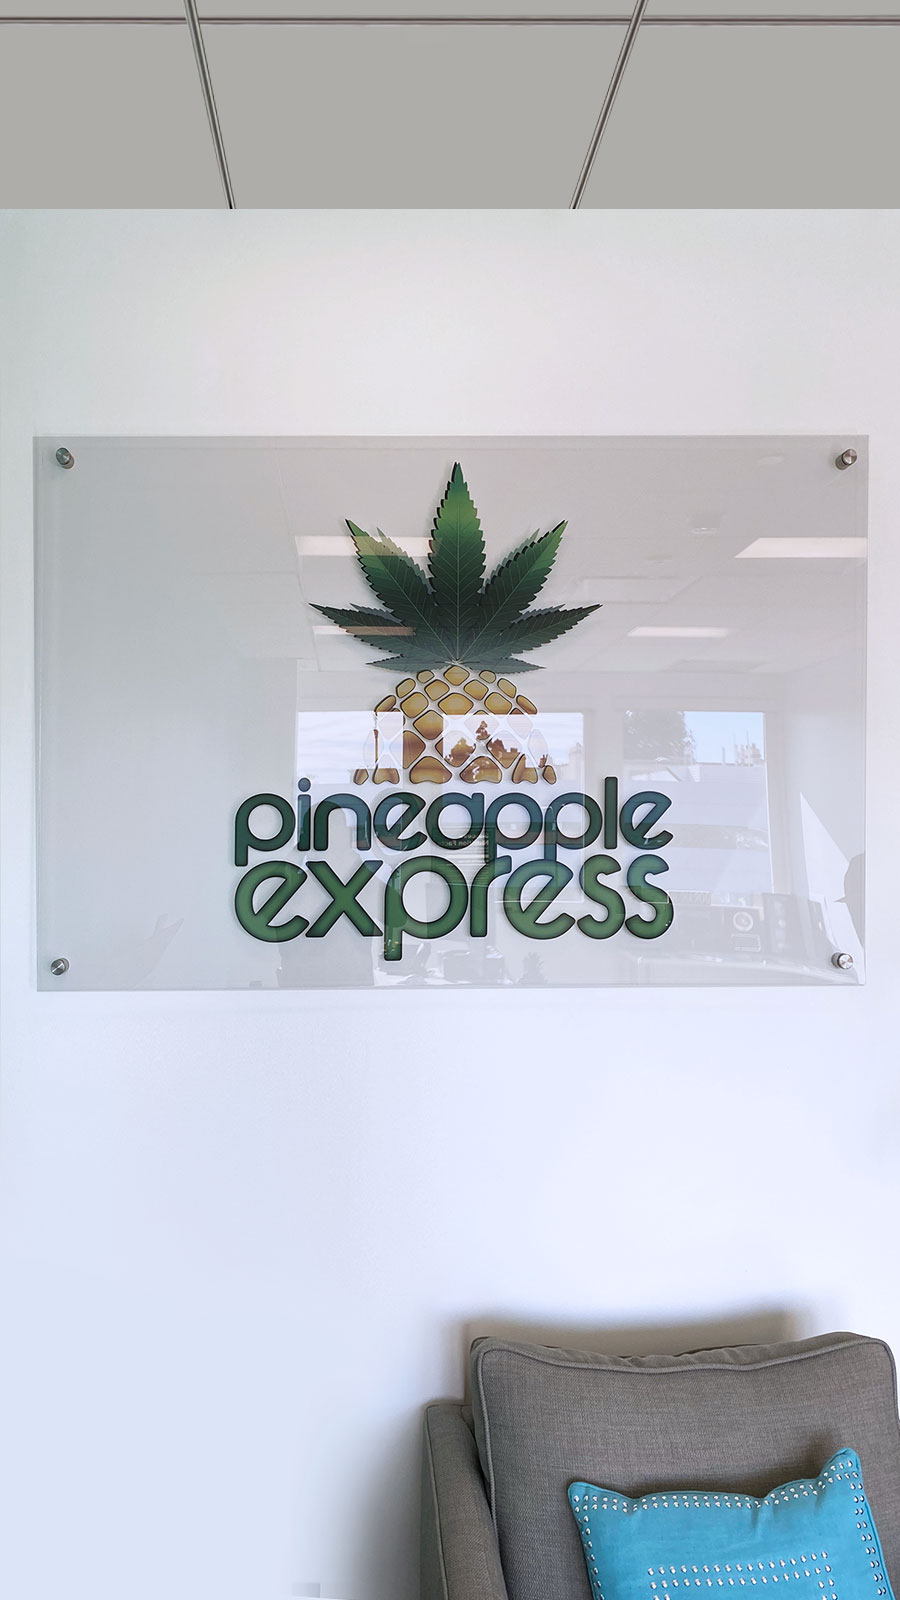 pineapple express office sign